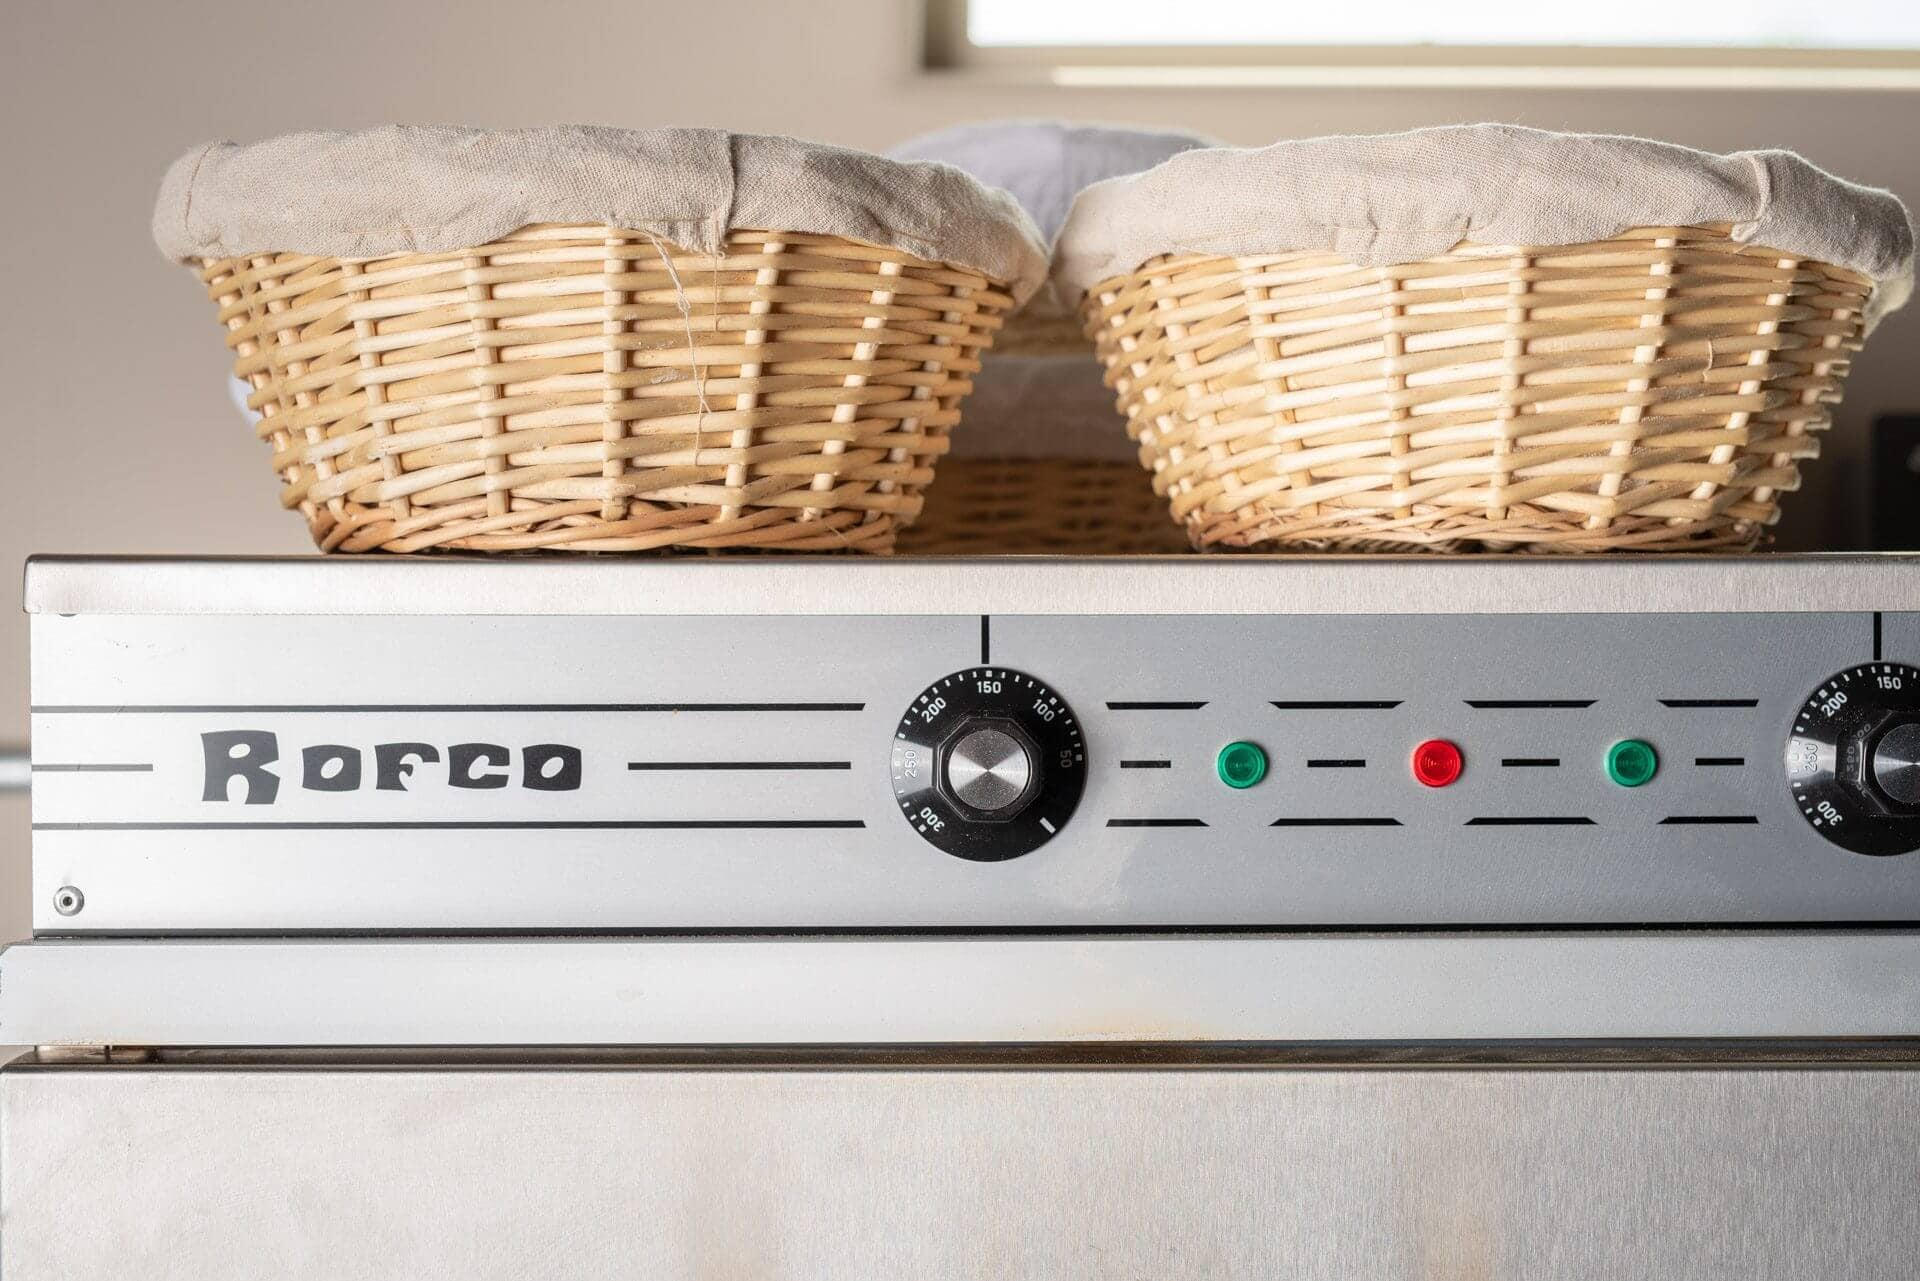 Rofco B40 oven drying baskets